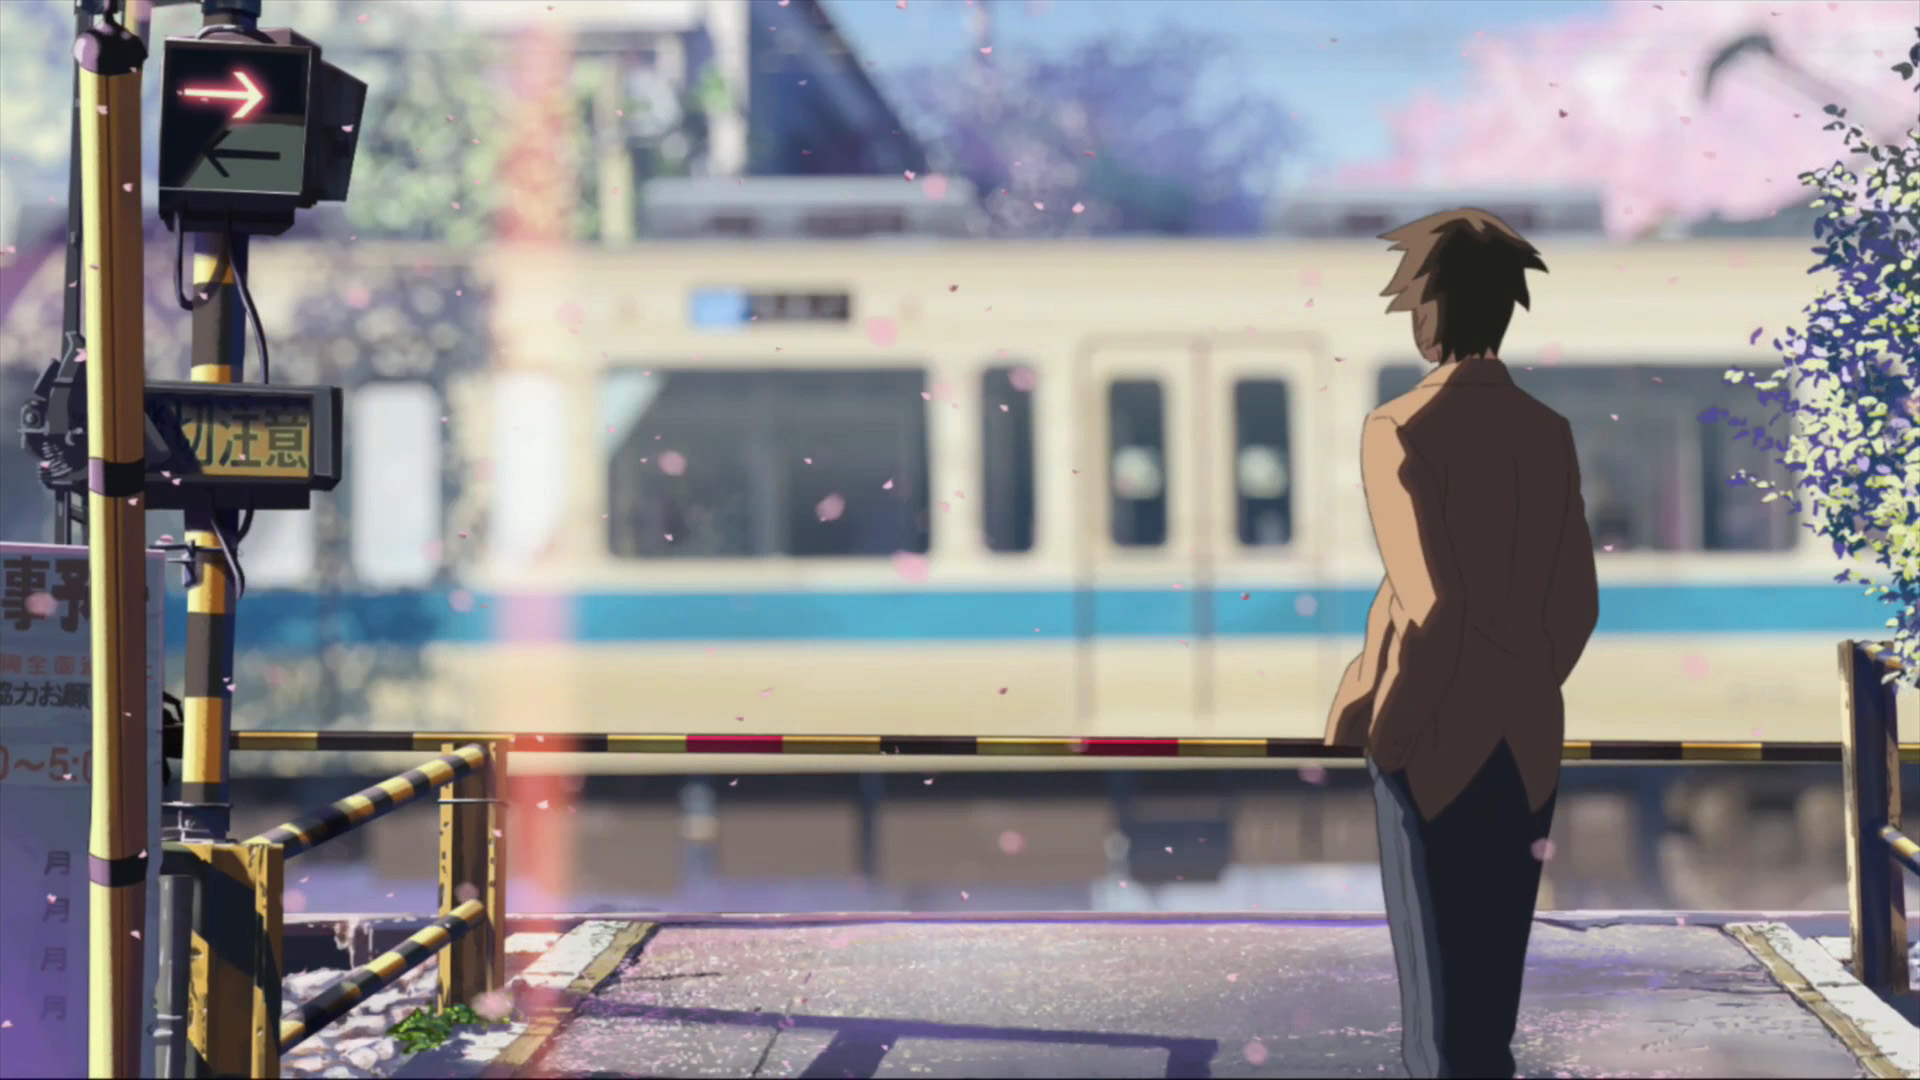 5 Centimeters Per Second Hd Wallpaper Background Image 1920x1080 Id295942 Wallpaper Abyss